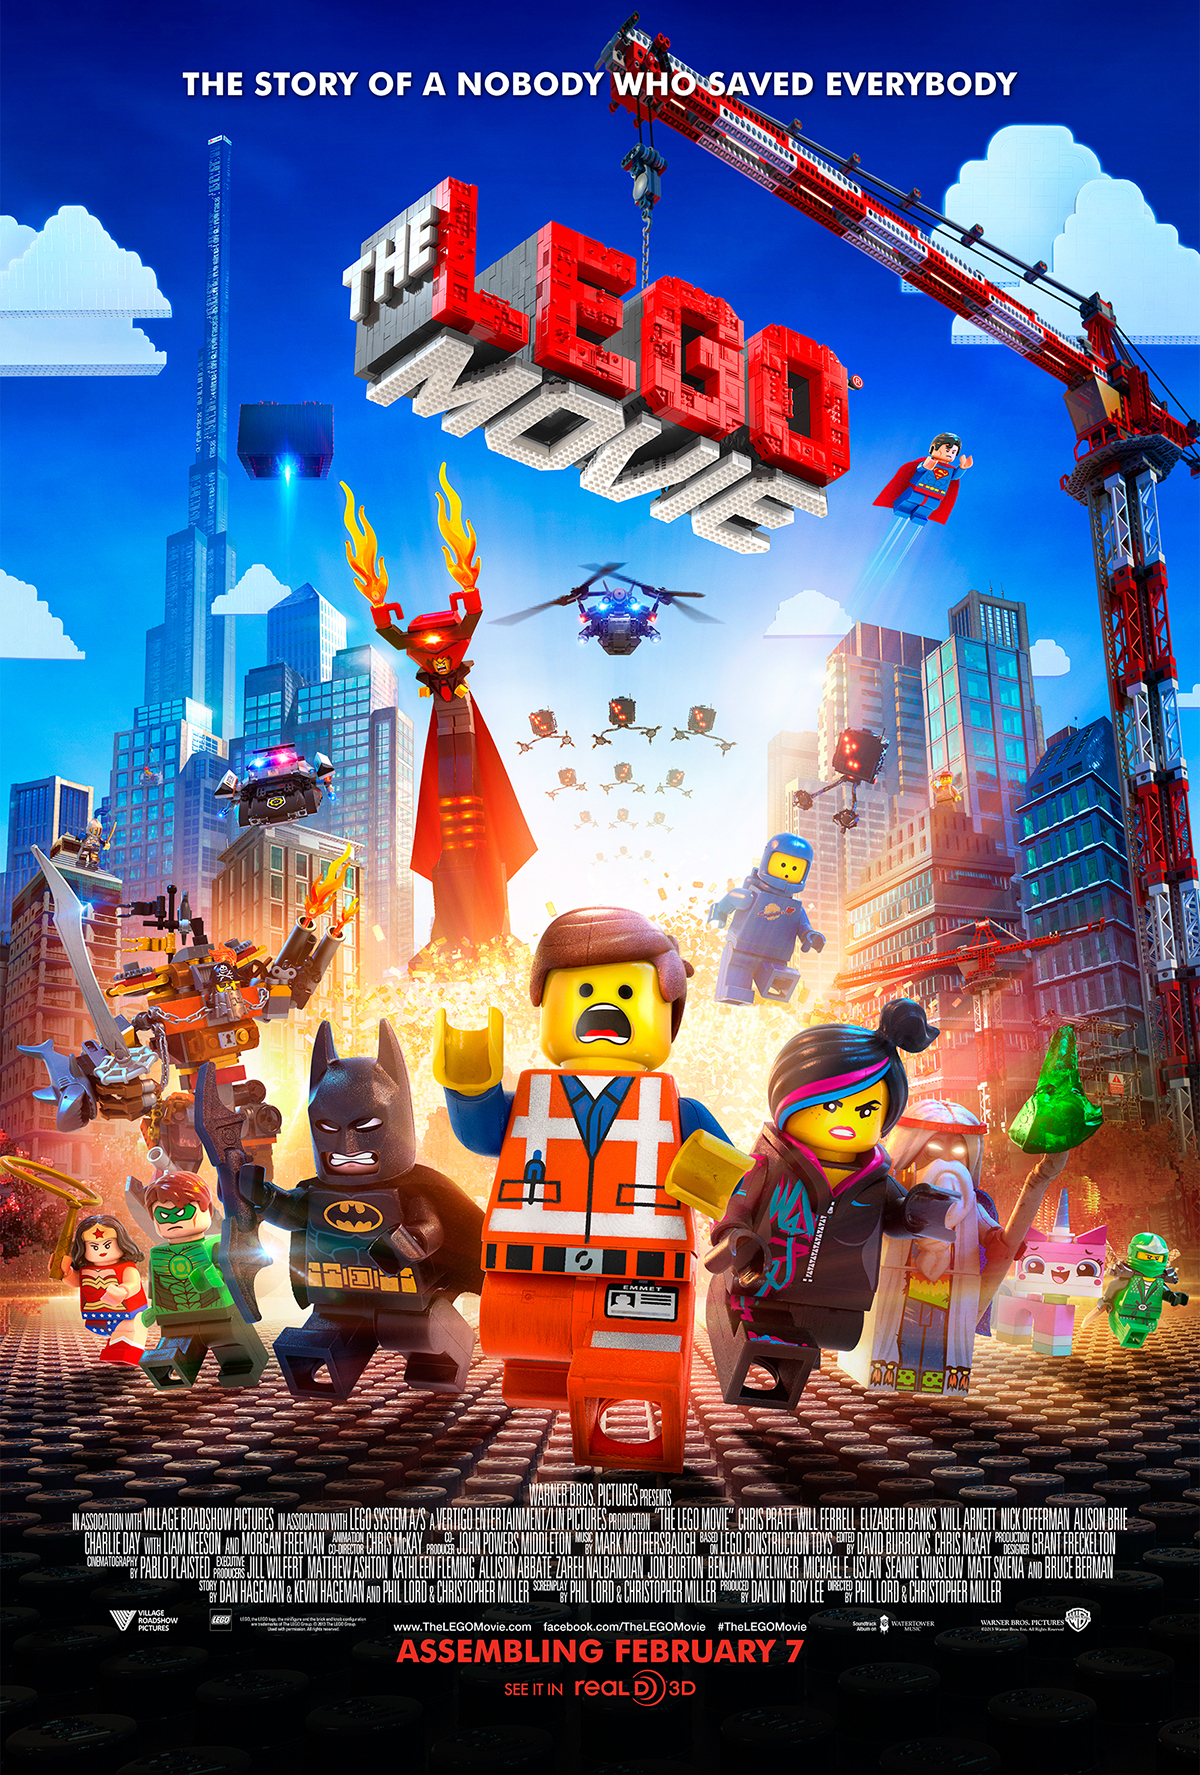 The Lego Movie by Phil Lord, Christopher Miller